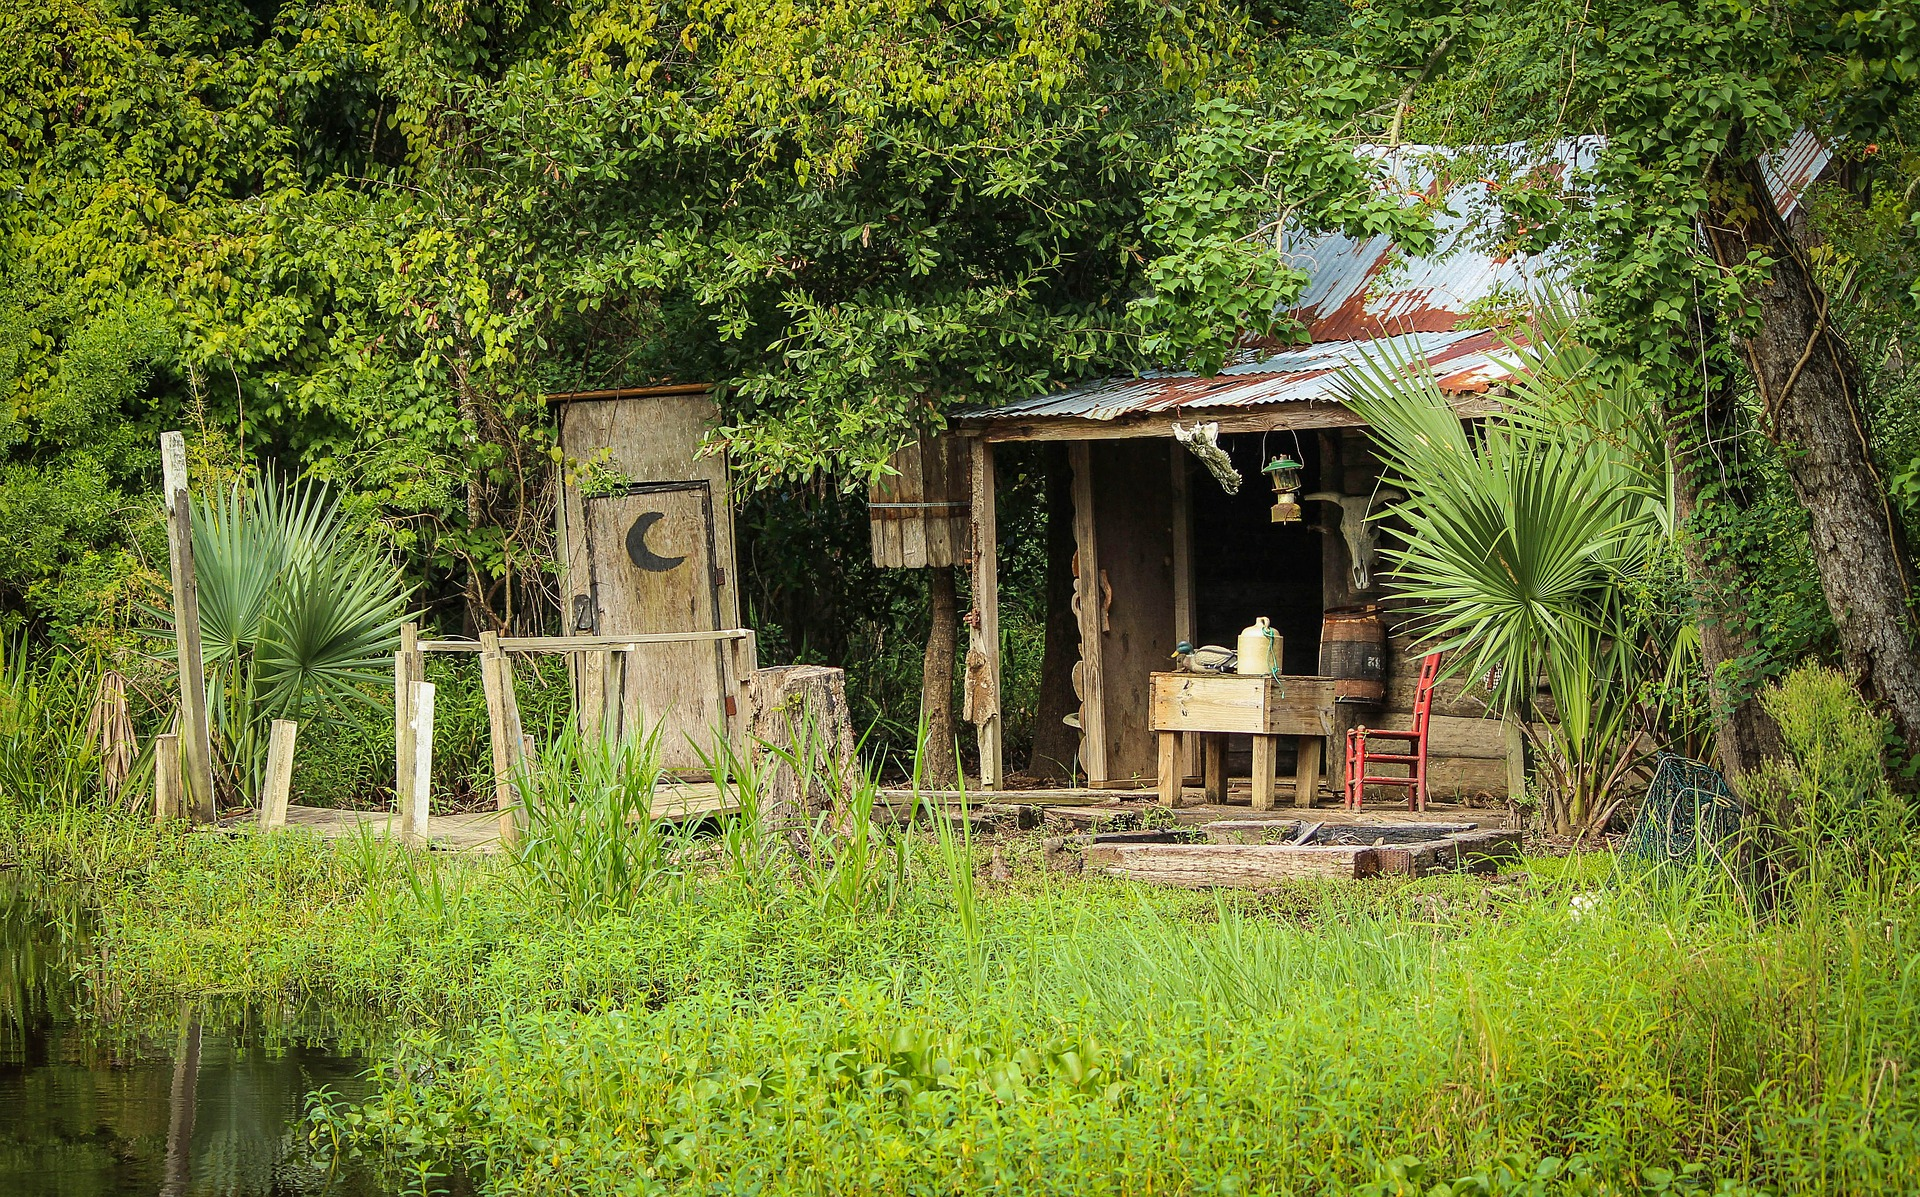 Cabin on swamp in New Orleans